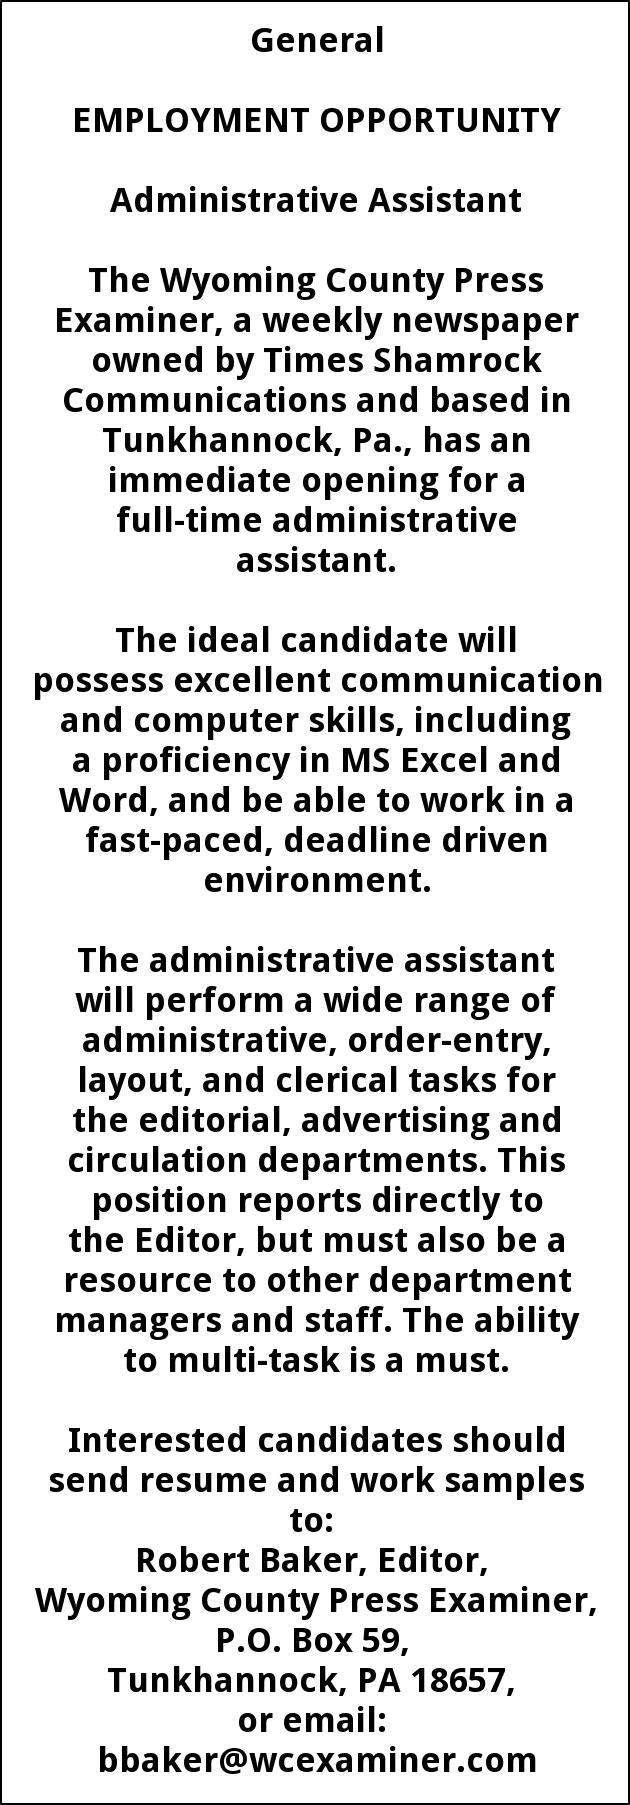 Administrative Assistant, Wyoming County Press Examiner, Tunkhannock, PA